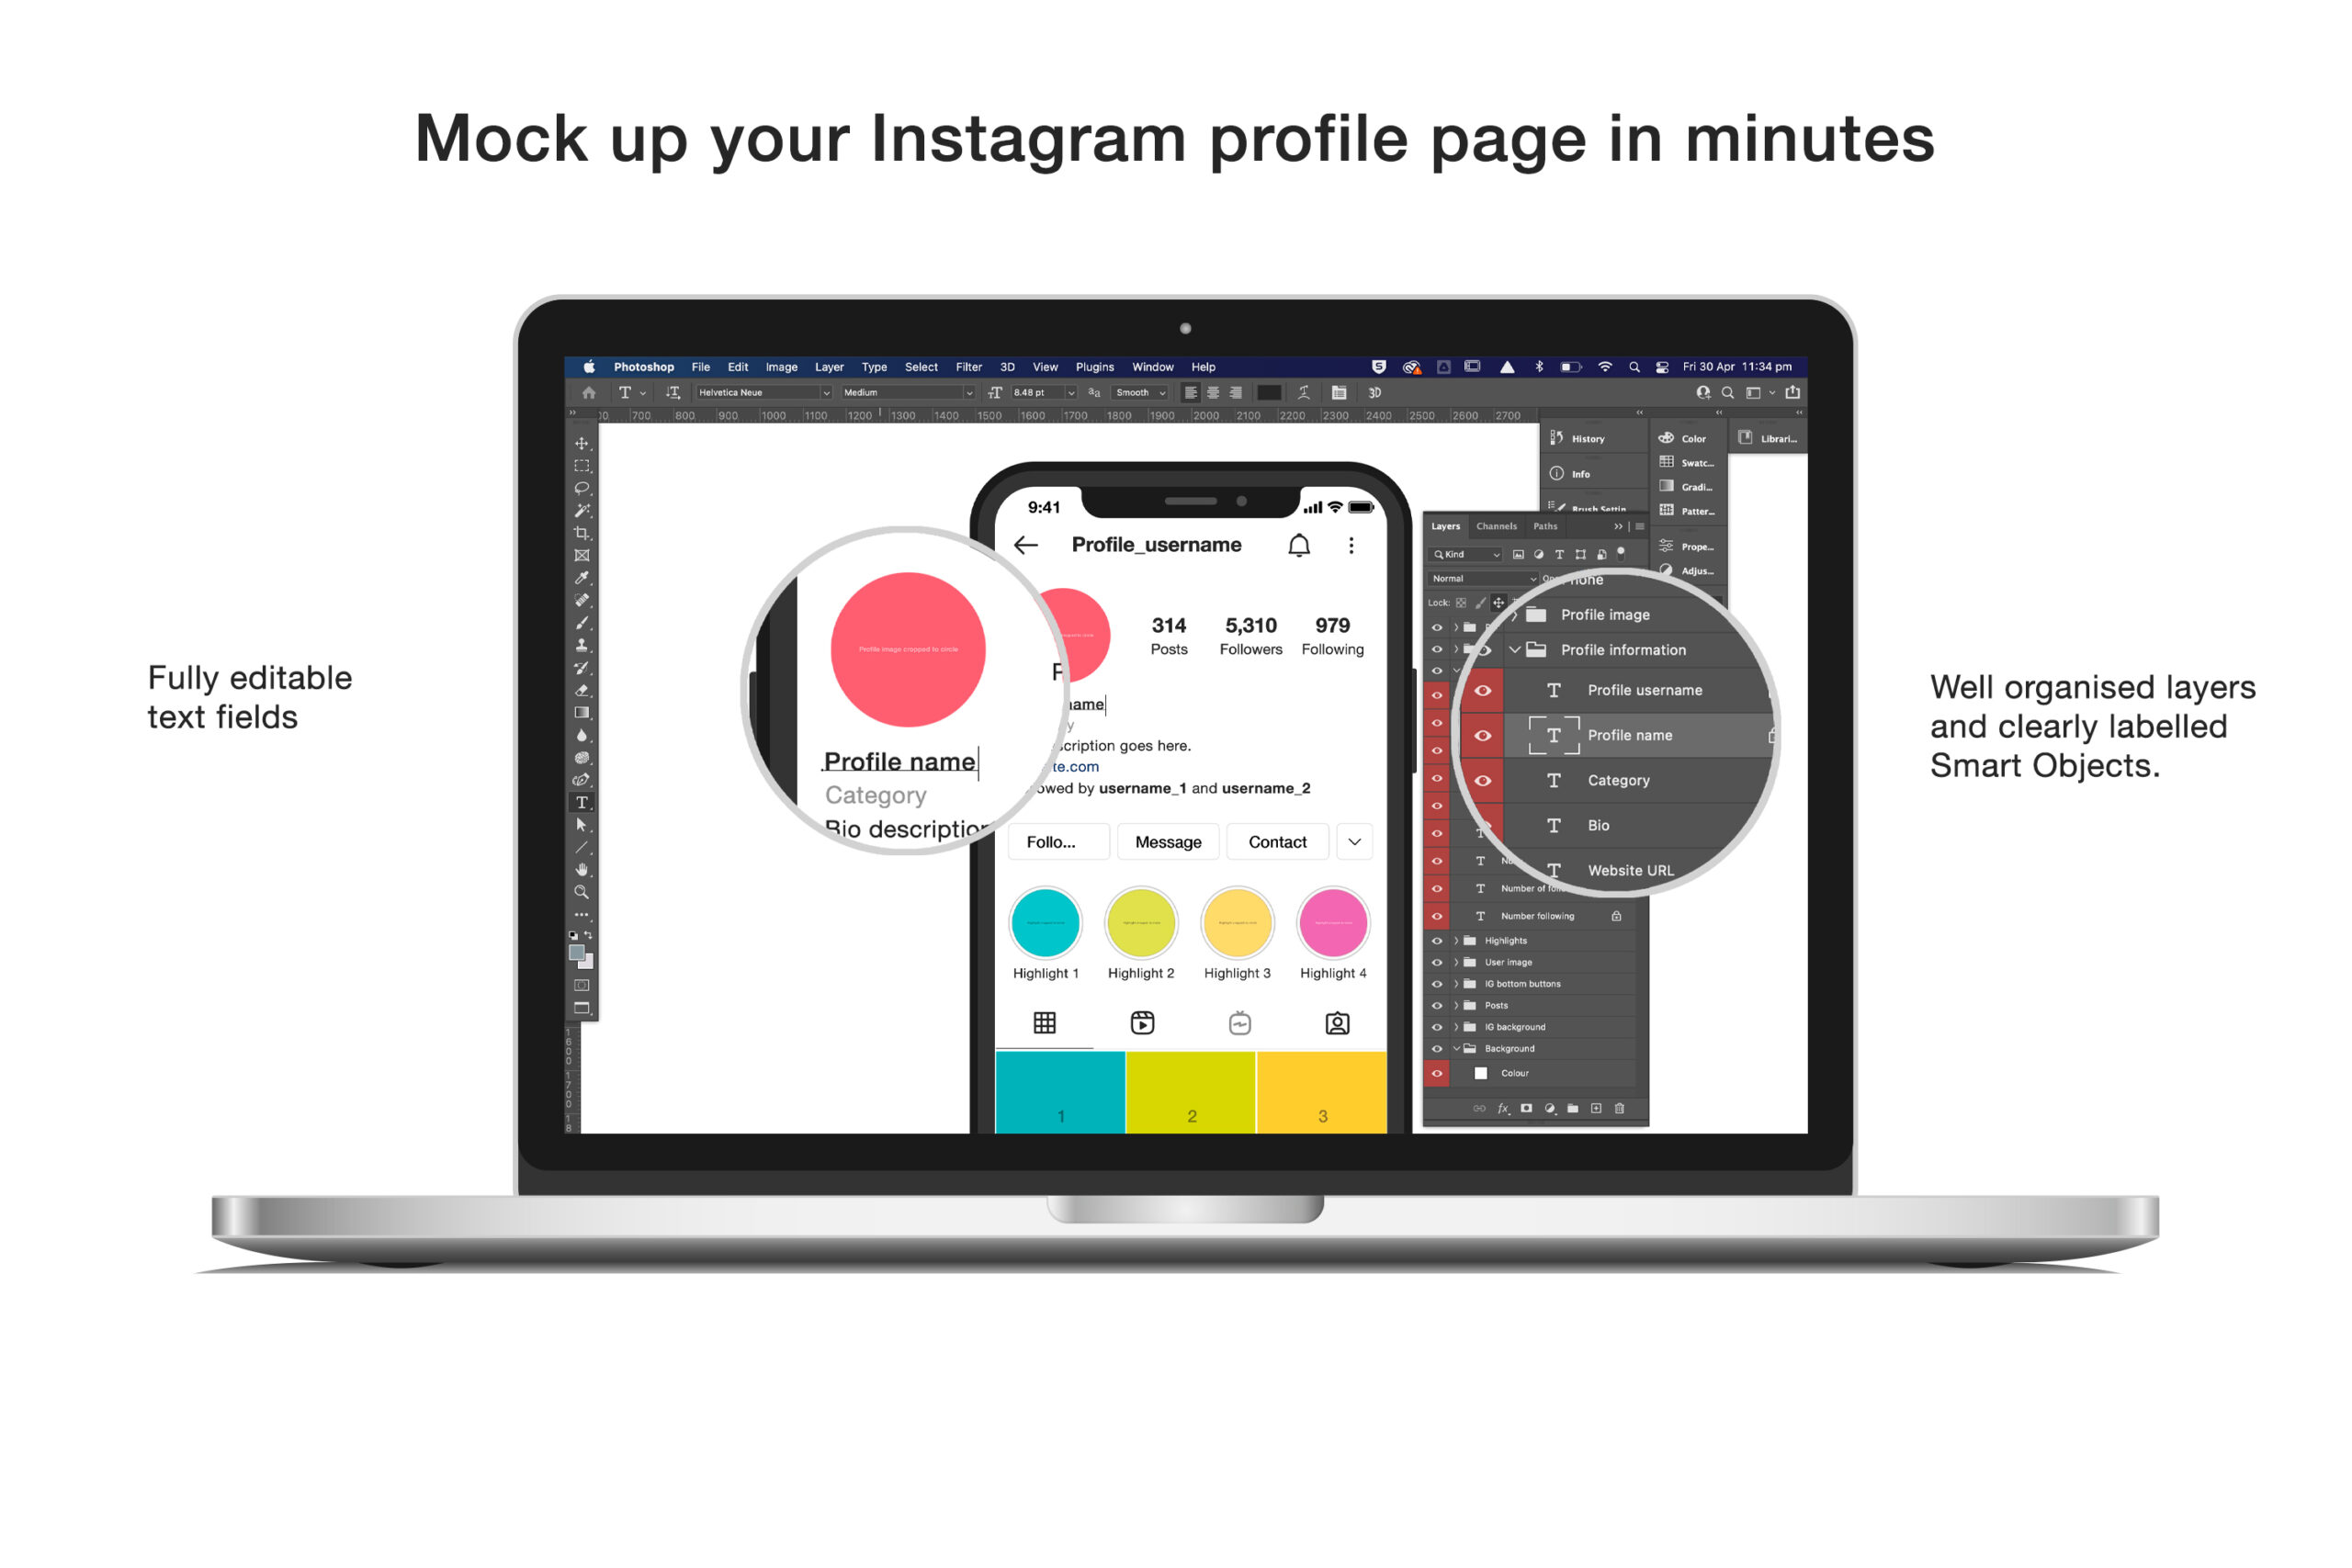 Free Instagram Mockup with fully editable text fields